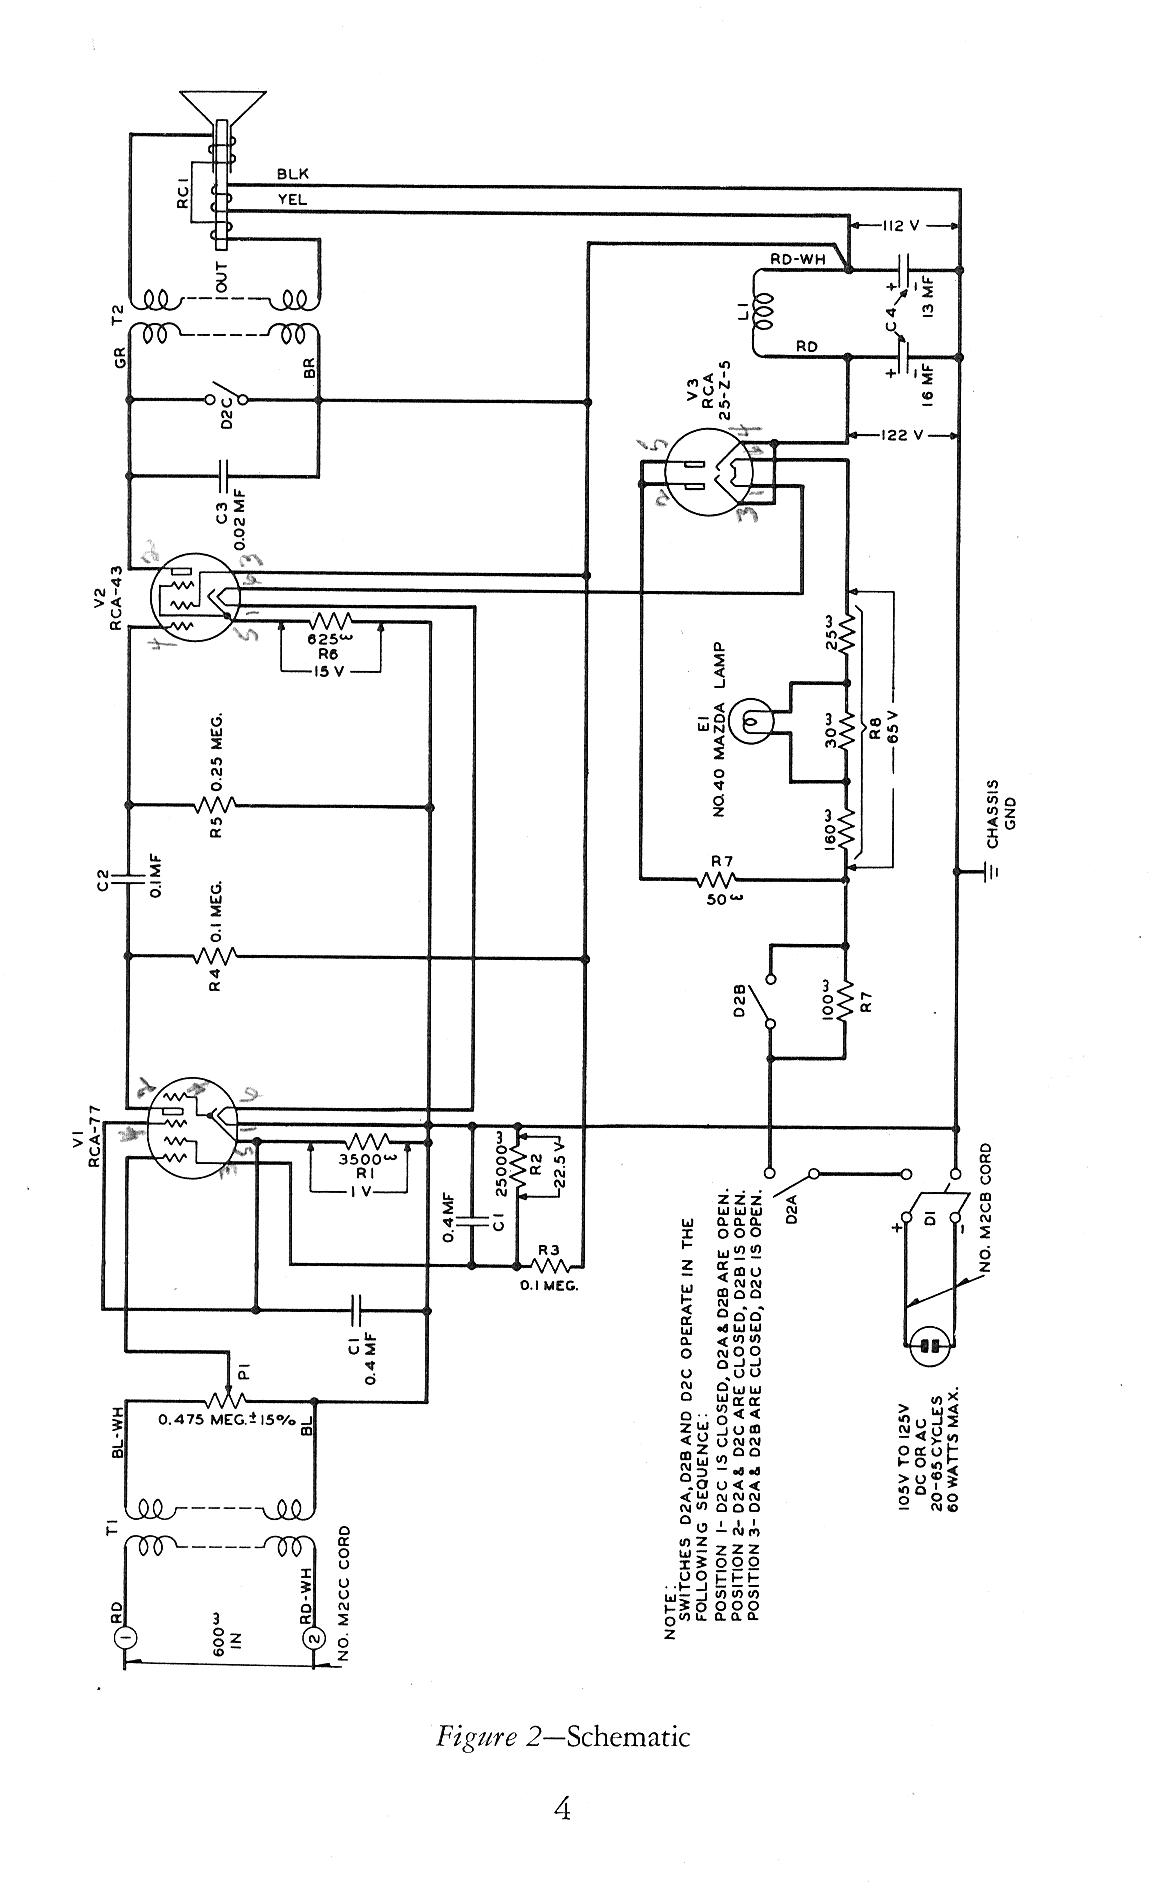 Telephone Technical References Electrical Wiring Diagrams For A Simpson 260 Multimeter 100 Type